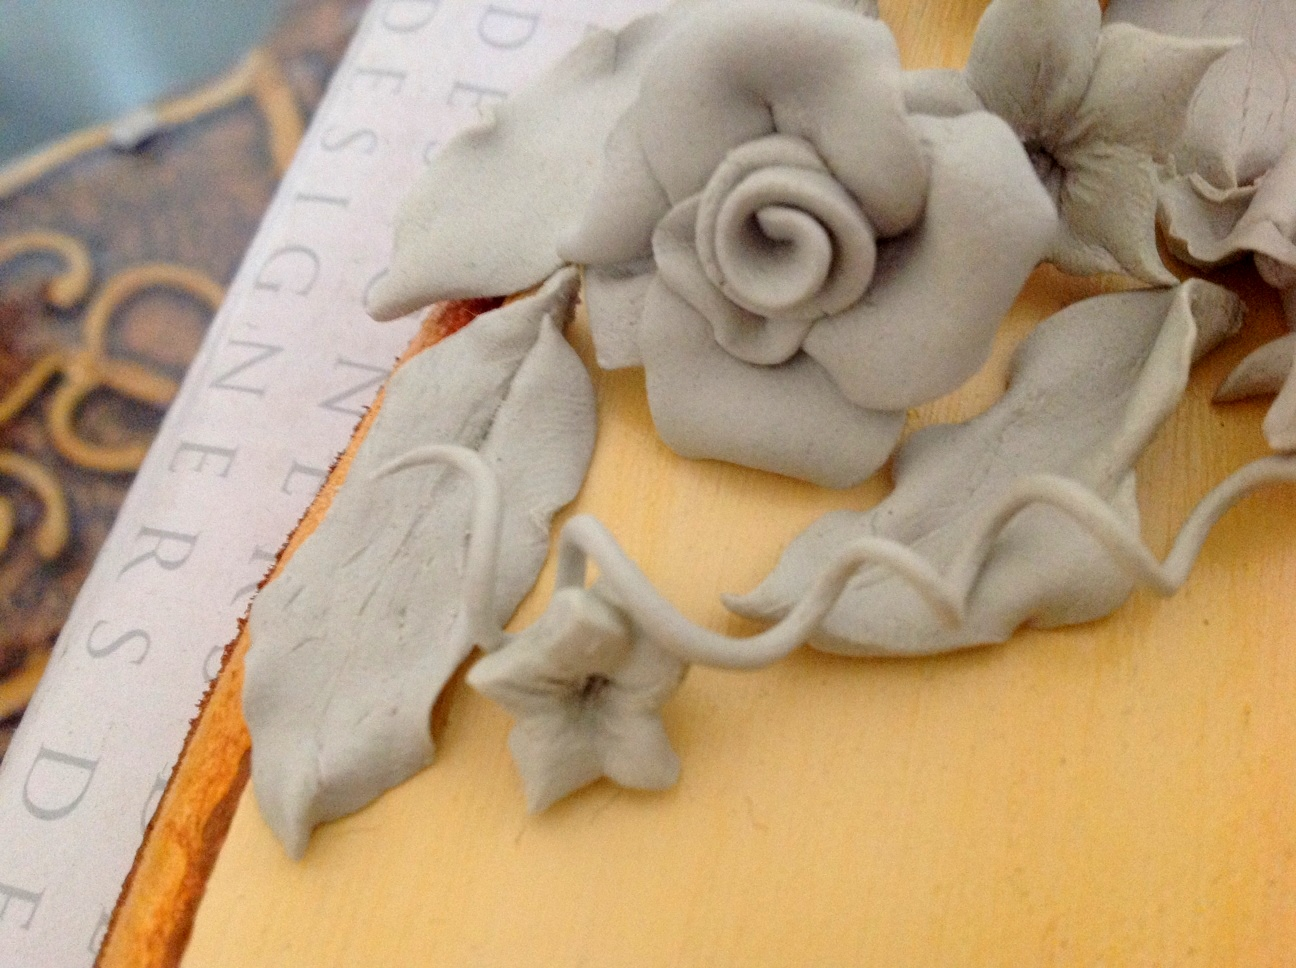 Take A Little Of The Mix In Your Hand And Flaten It Roll Into Petal Form This Video Will Give You An Idea On How To Make Flowers